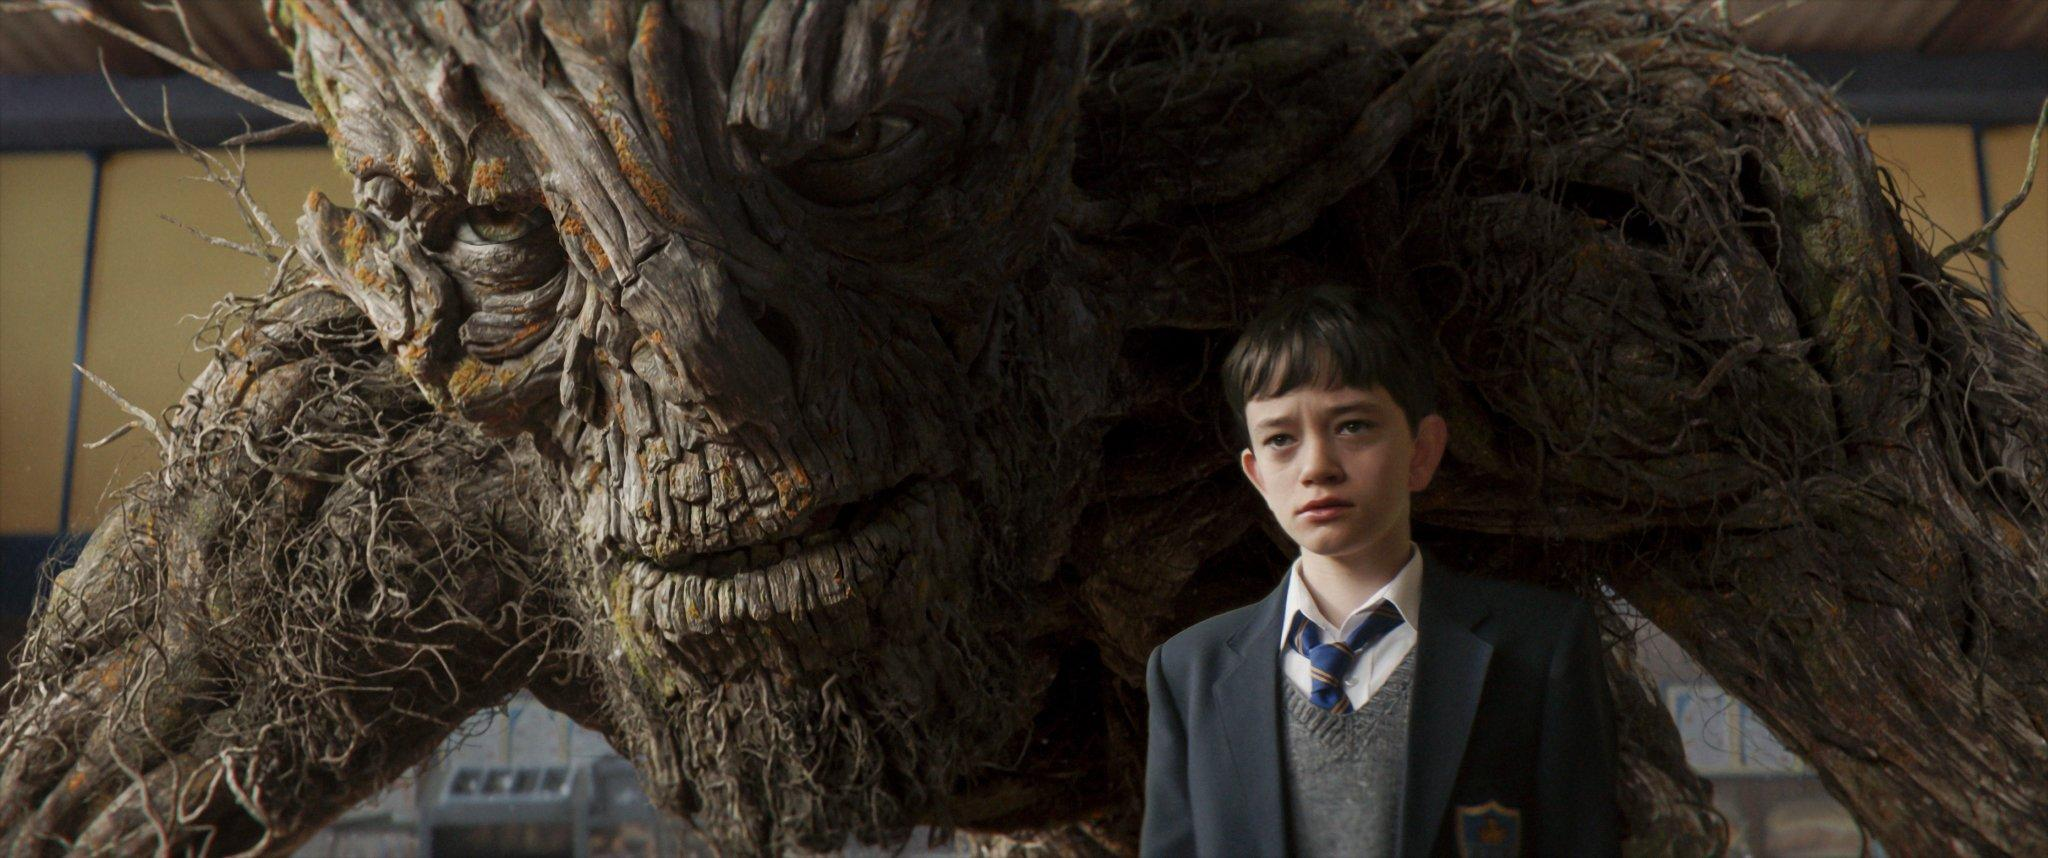 """A Monster Calls"" is a colorful, heart-wrenching tale that deserves to be heard"